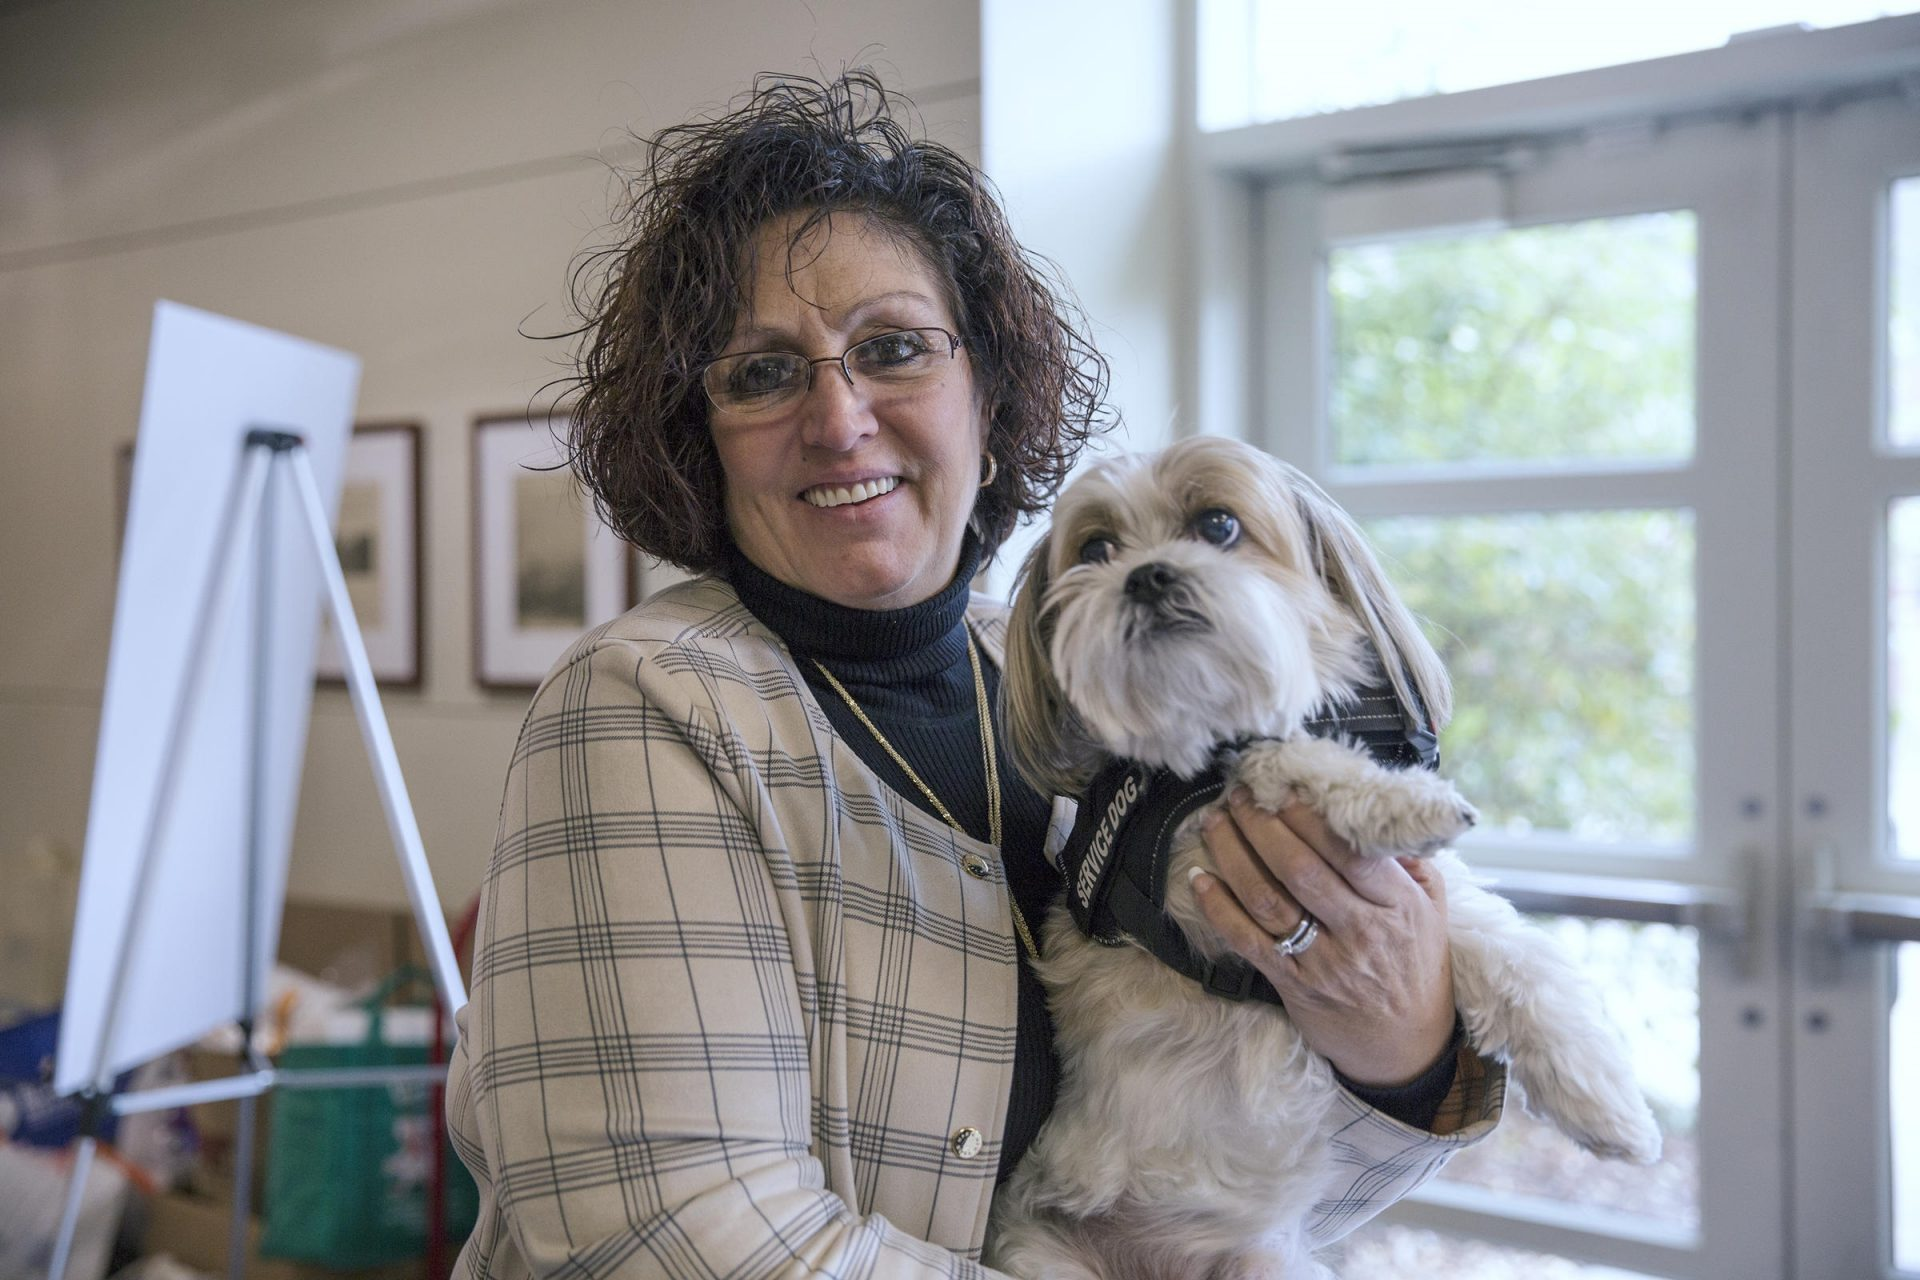 Jane Guerino, a survivor of sex trafficking, is with her service dog, Bailey. She says the public needs to recognize that human trafficking is happening across the state and beyond.